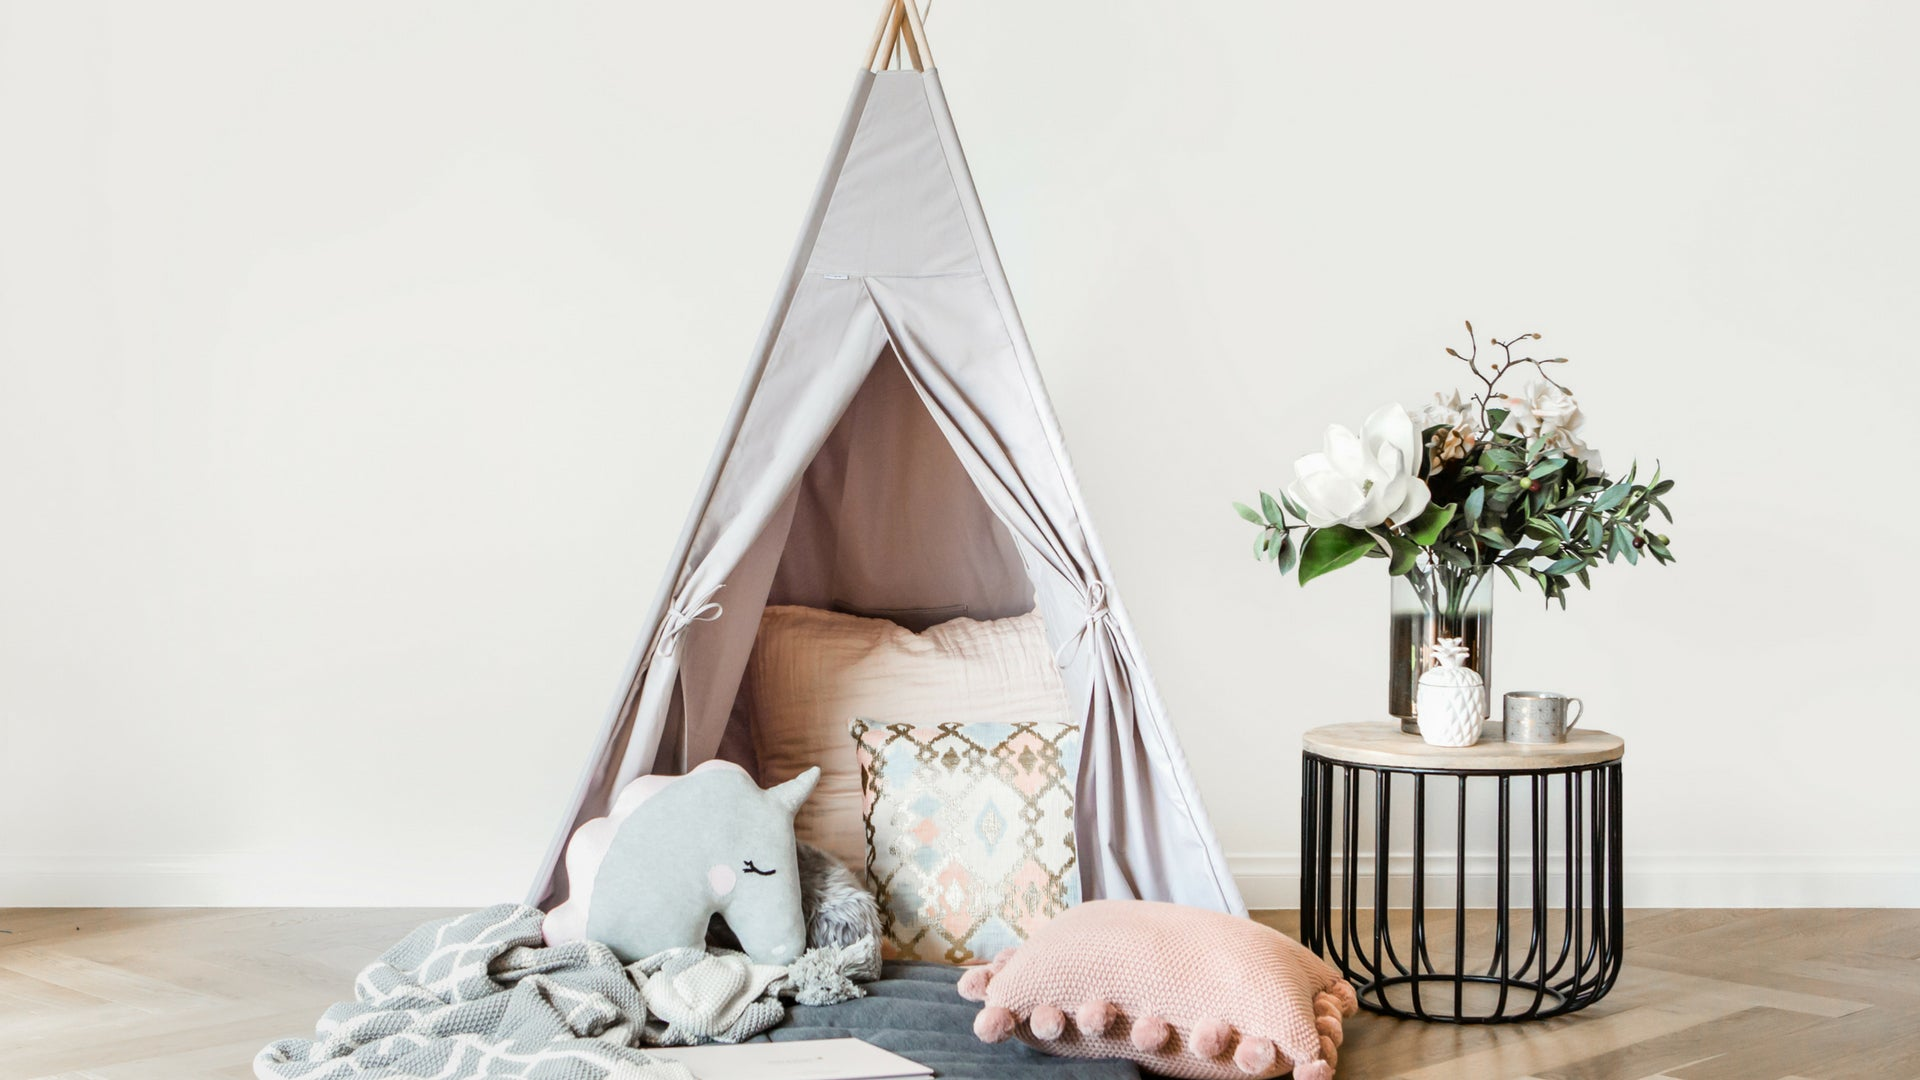 Kids Grey Teepee Tent Birthday Gift Cattywampus